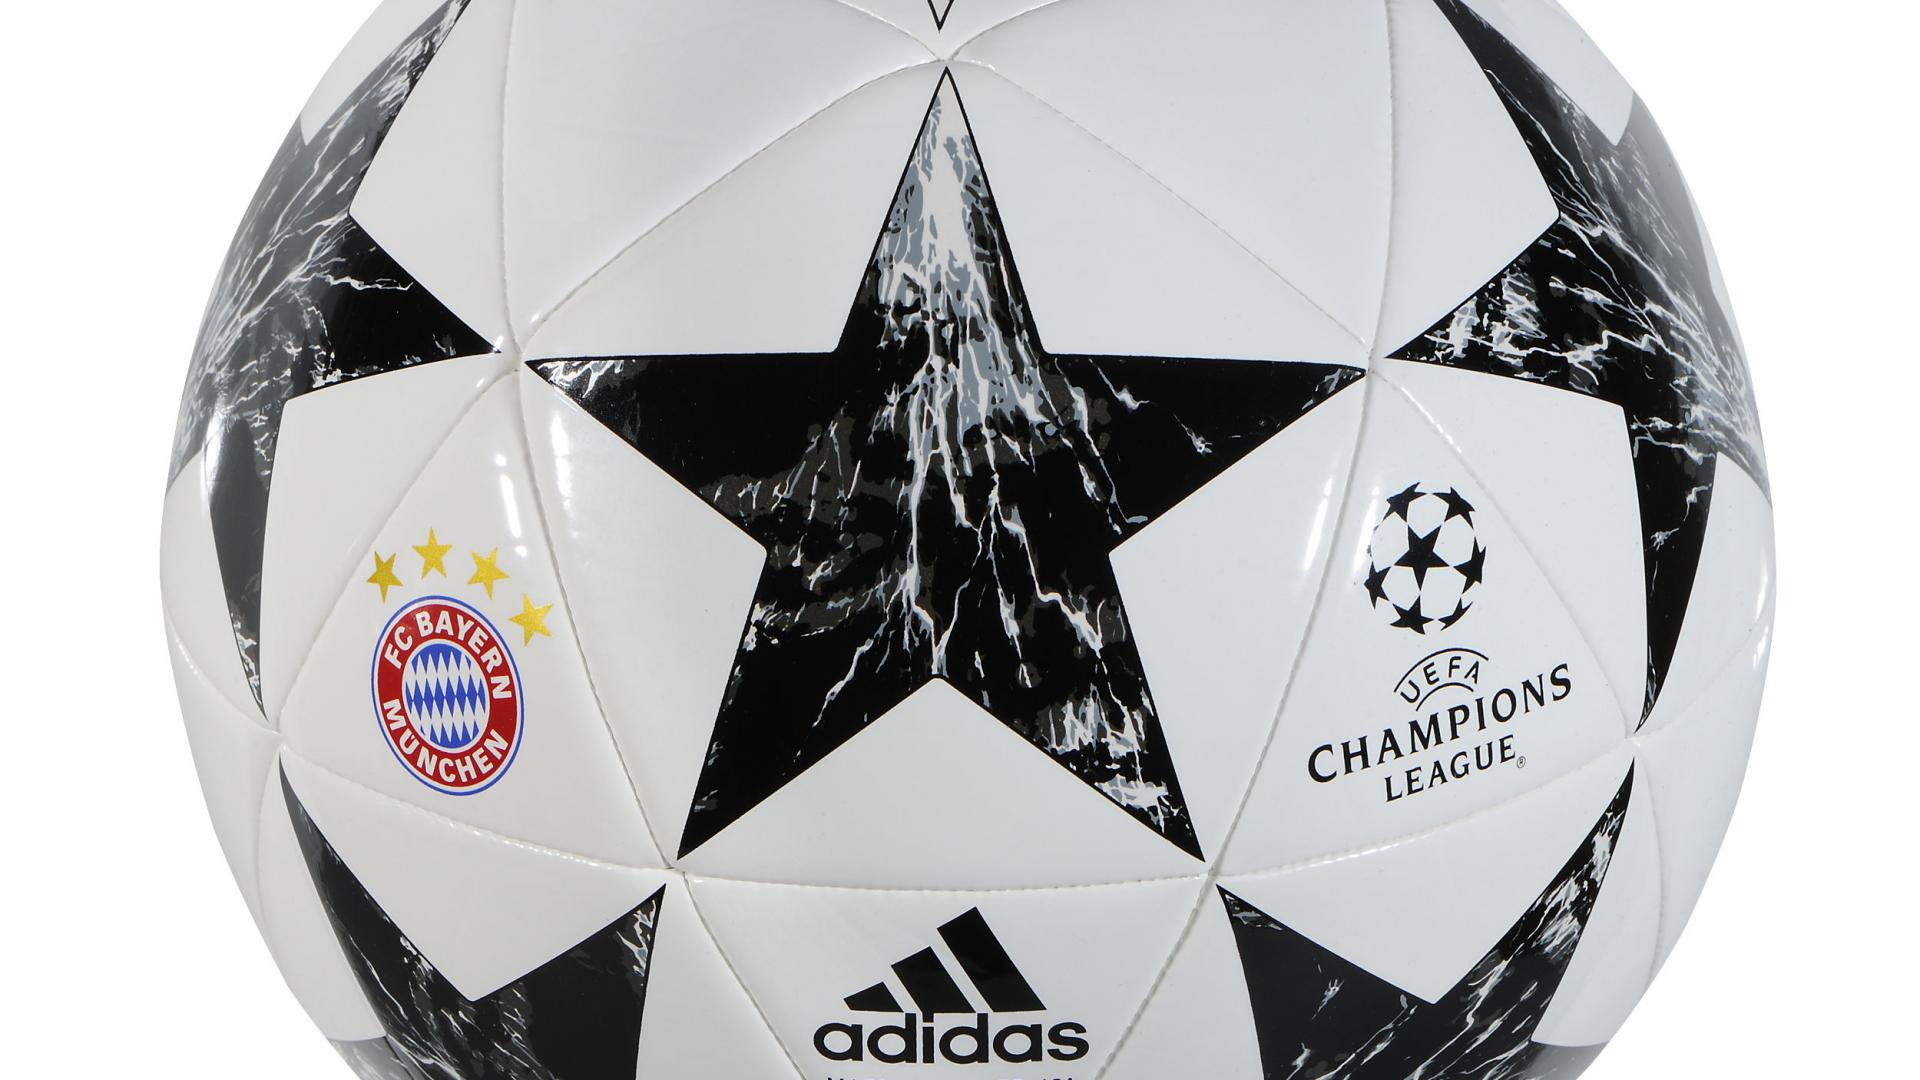 Pics of Soccer Ball with Adidas Champion League Ball FC ...